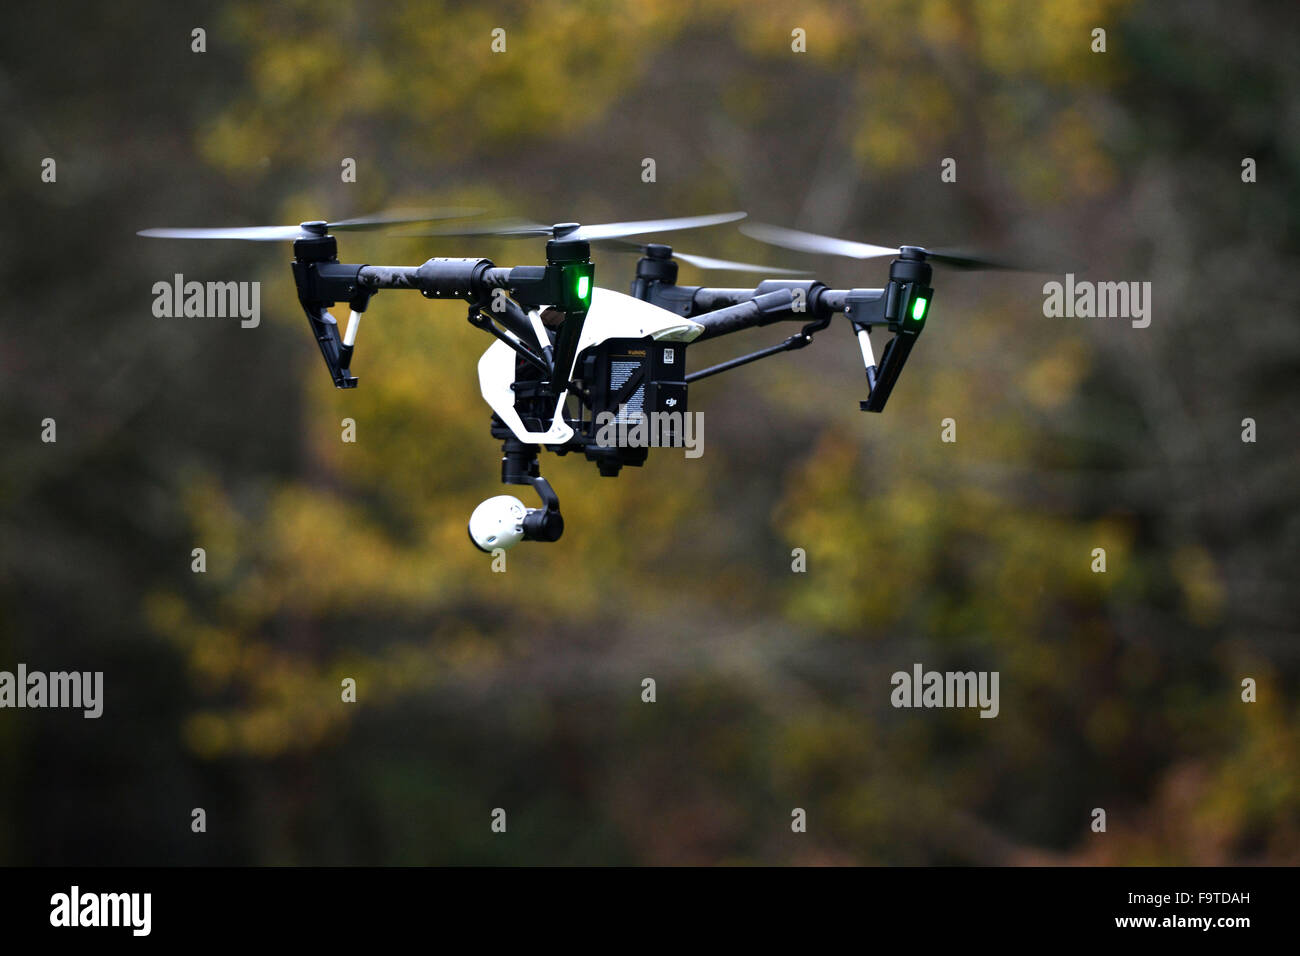 Devon & Cornwall Police use a drone in a search and rescue operation - Stock Image